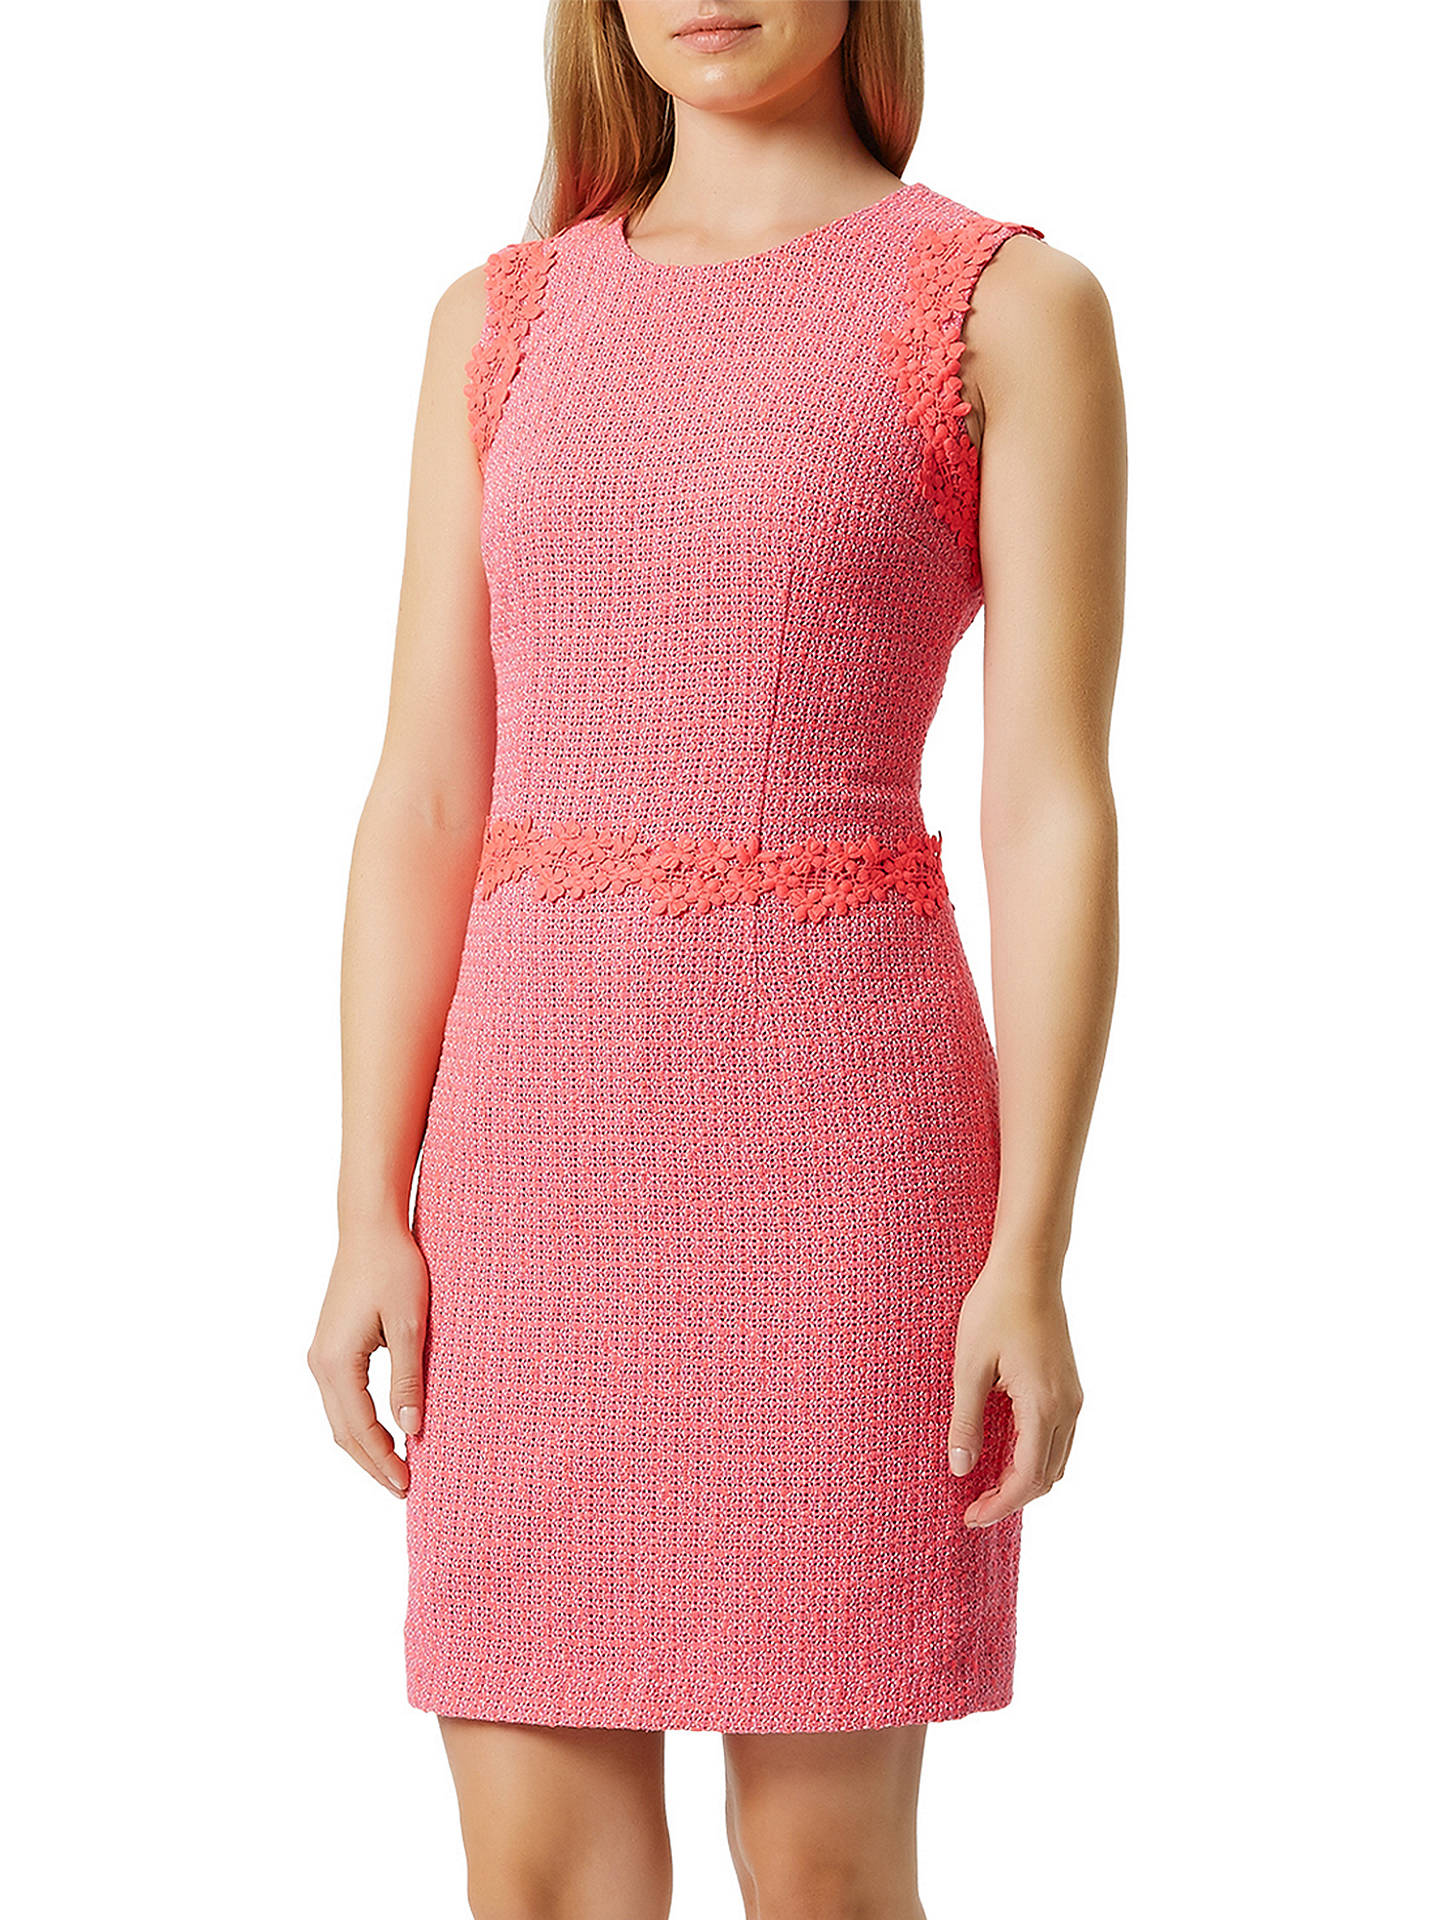 BuyDamsel in a Dress Aquitaine Dress, Pink, 10 Online at johnlewis.com